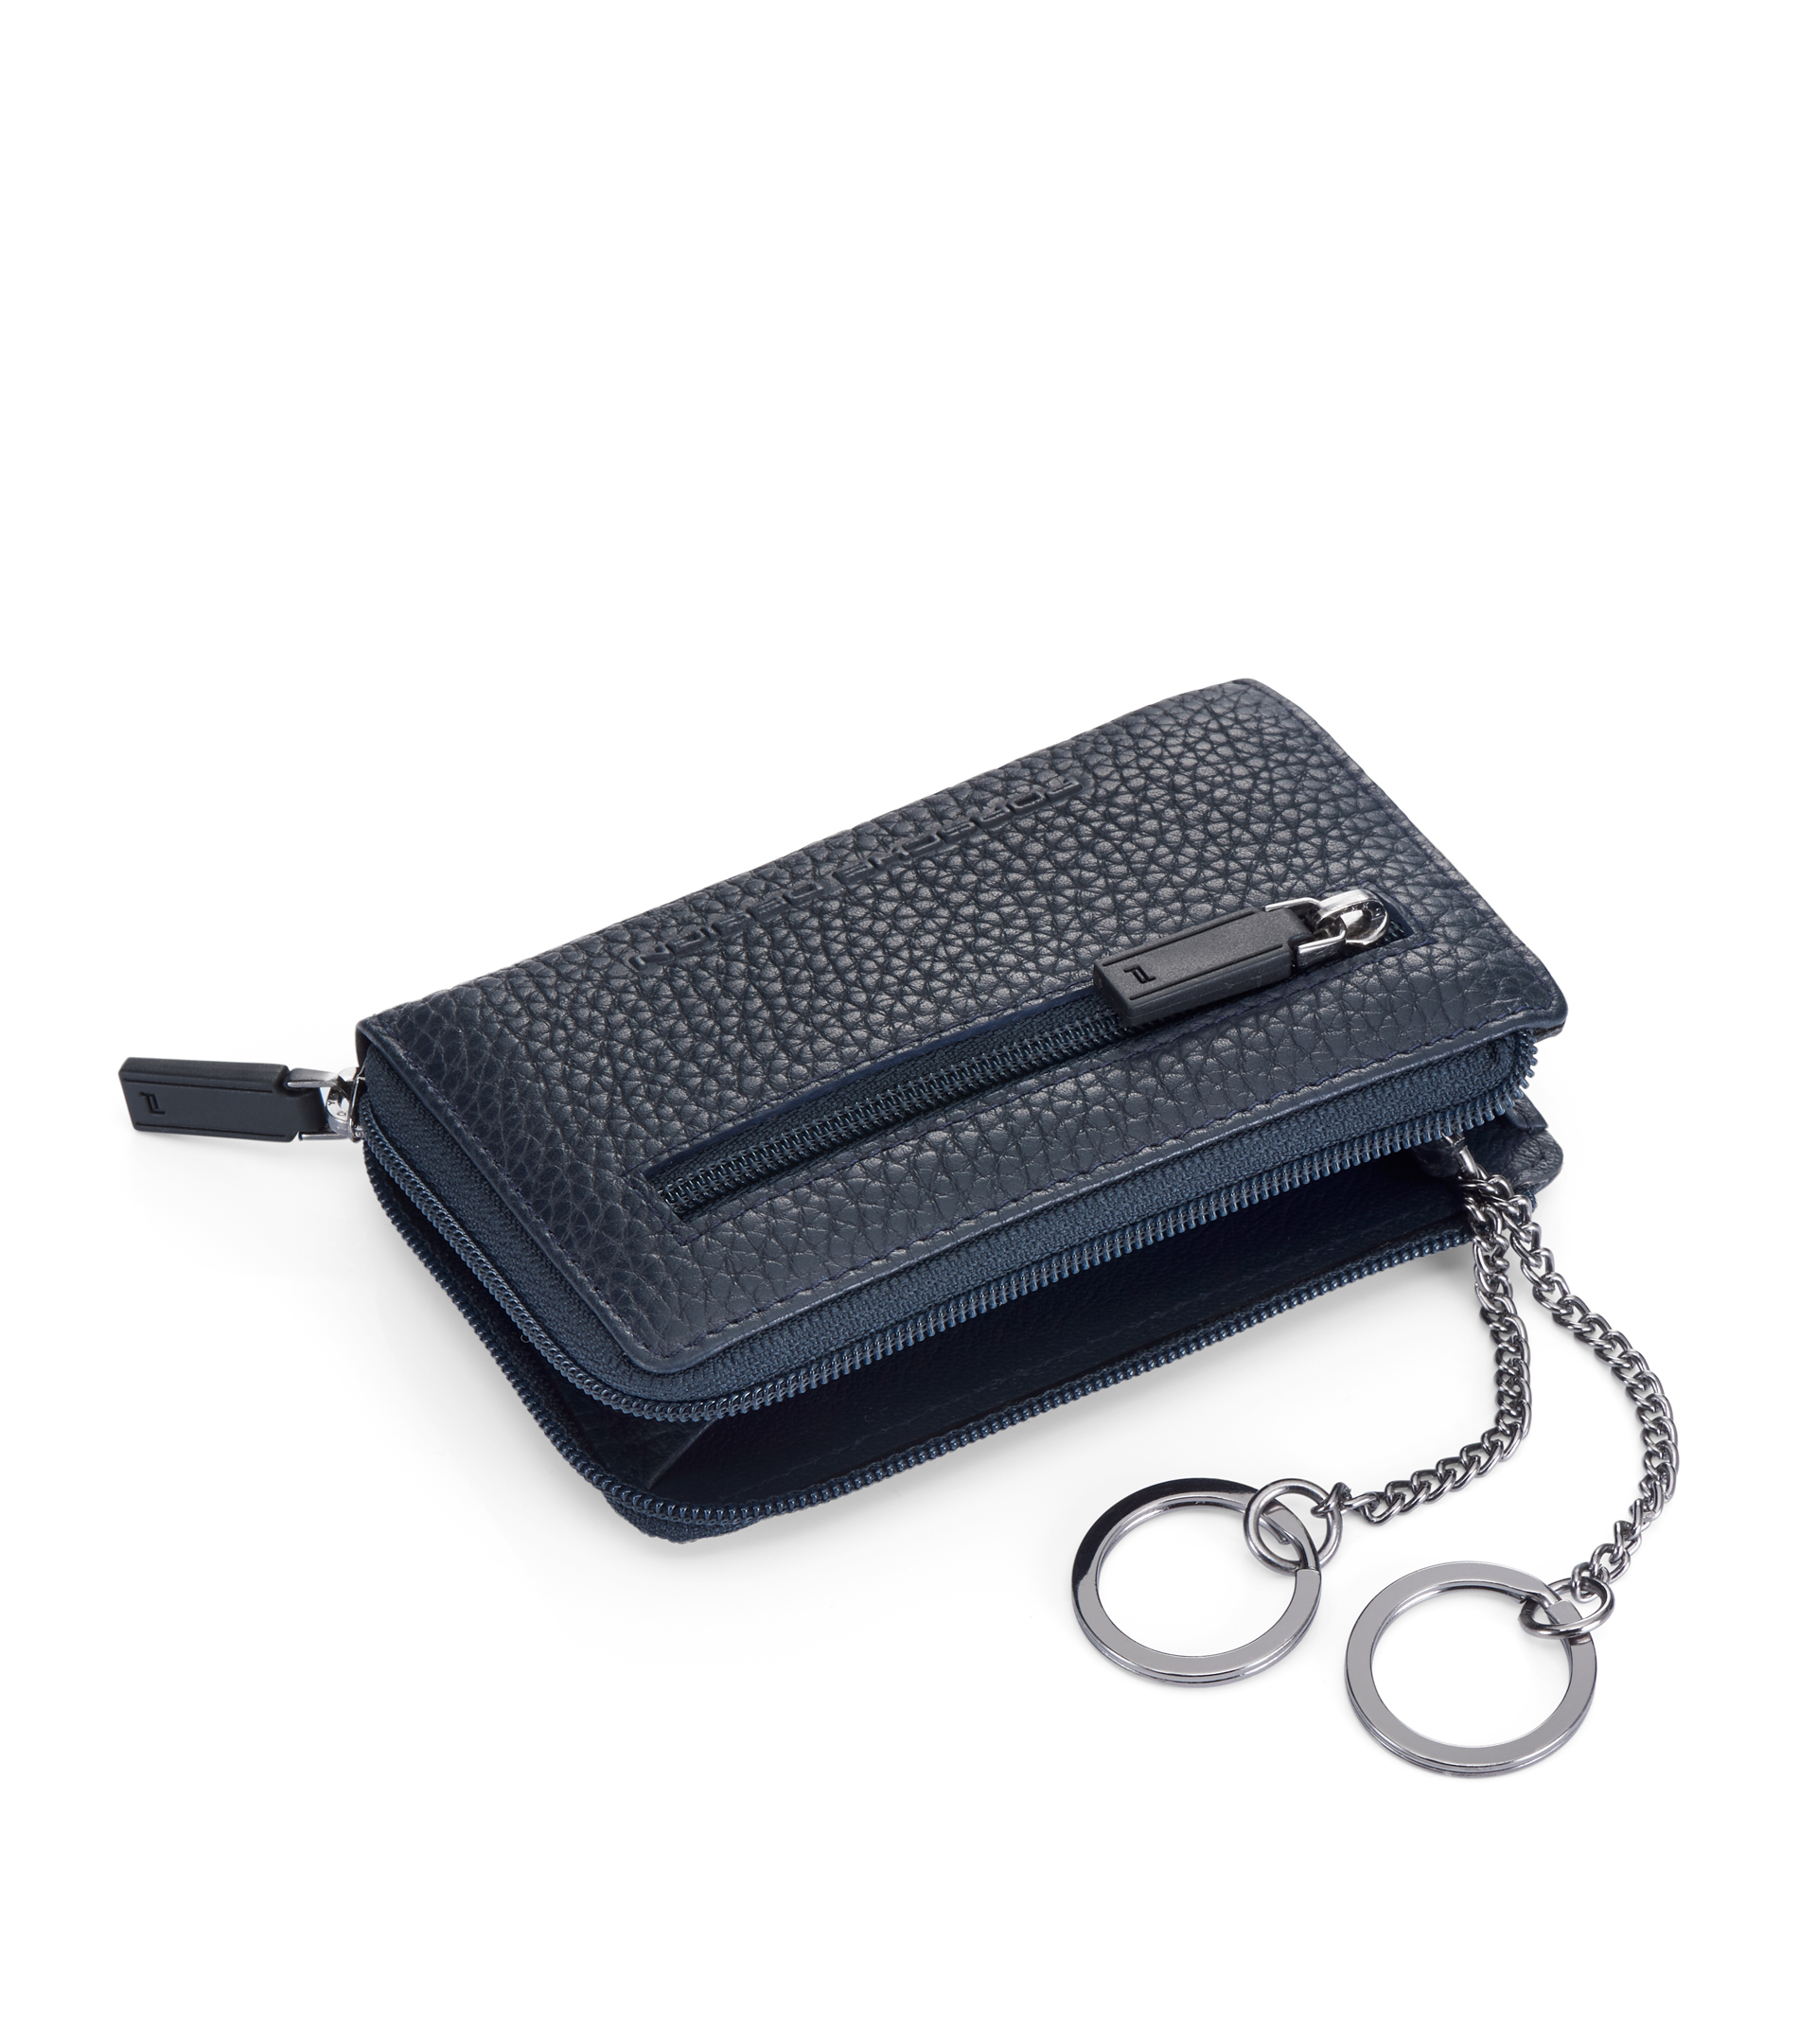 Cervo 2.1 LZ Key Case